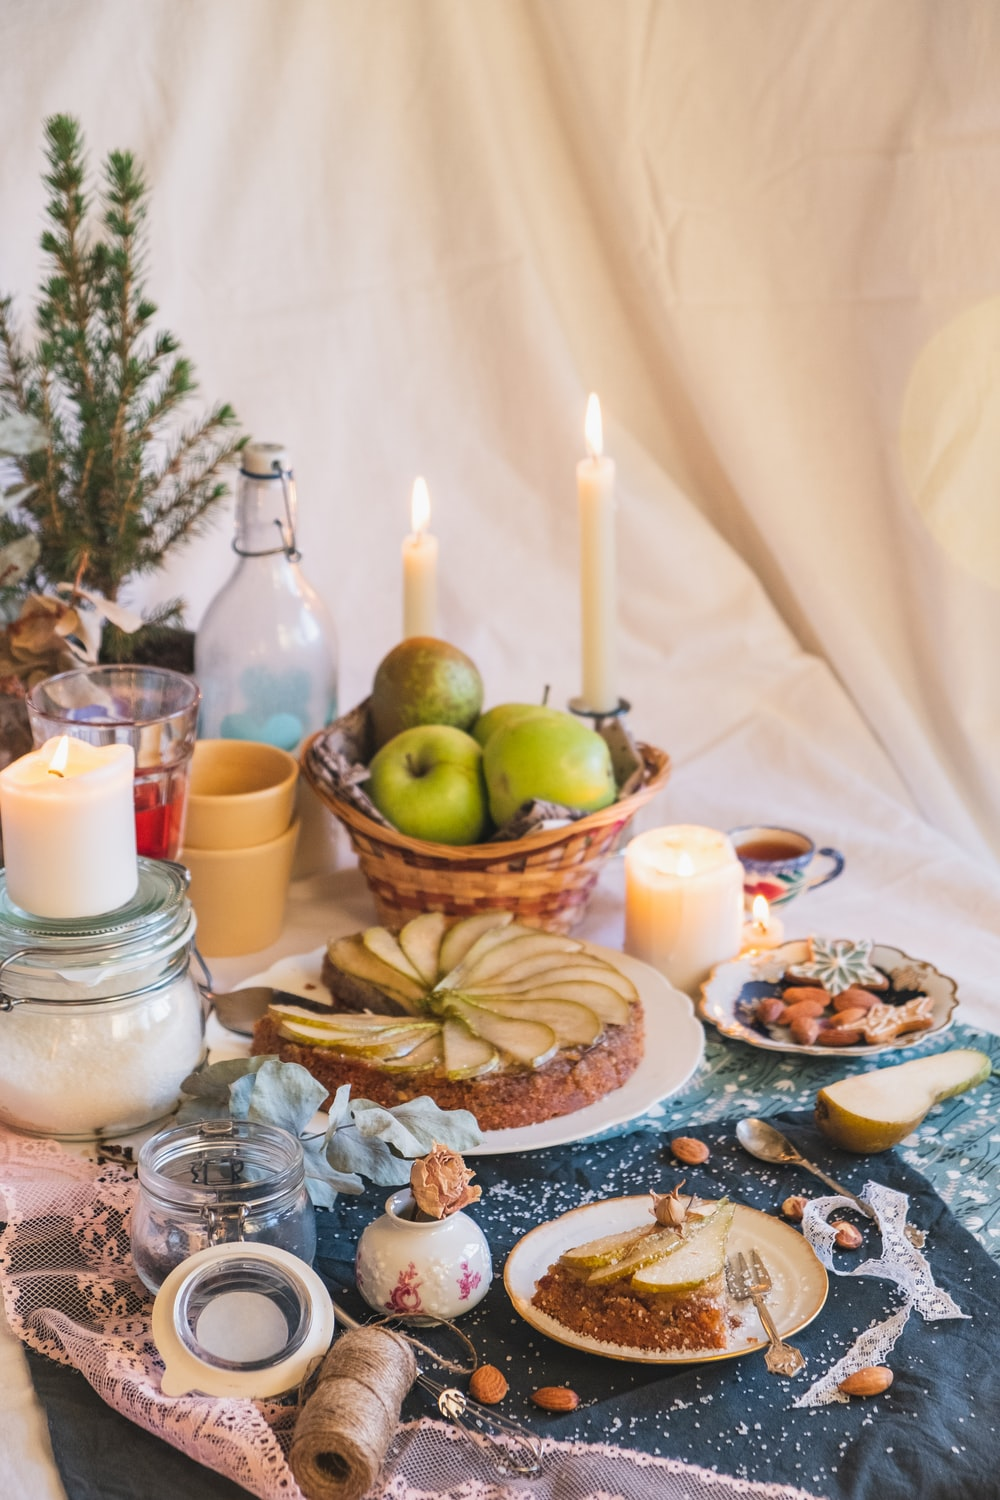 green apple fruit beside white pillar candles on brown wooden tray